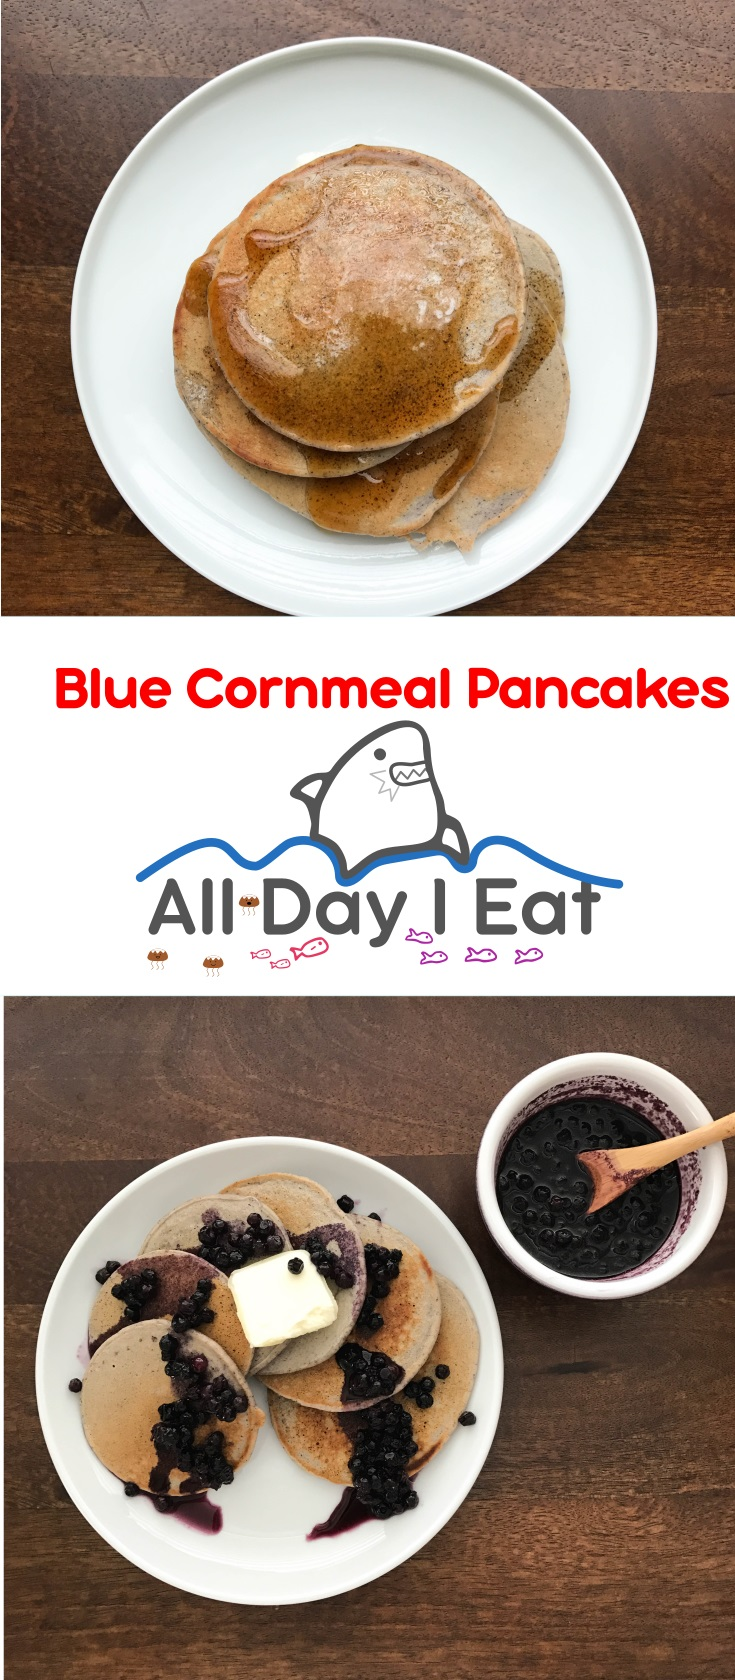 Blue Cornmeal Pancakes! An easy and delicious alternative to flour based pancakes! Cornmeal adds texture and nutrition to your favorite breakfast meal. | www.alldayieat.com